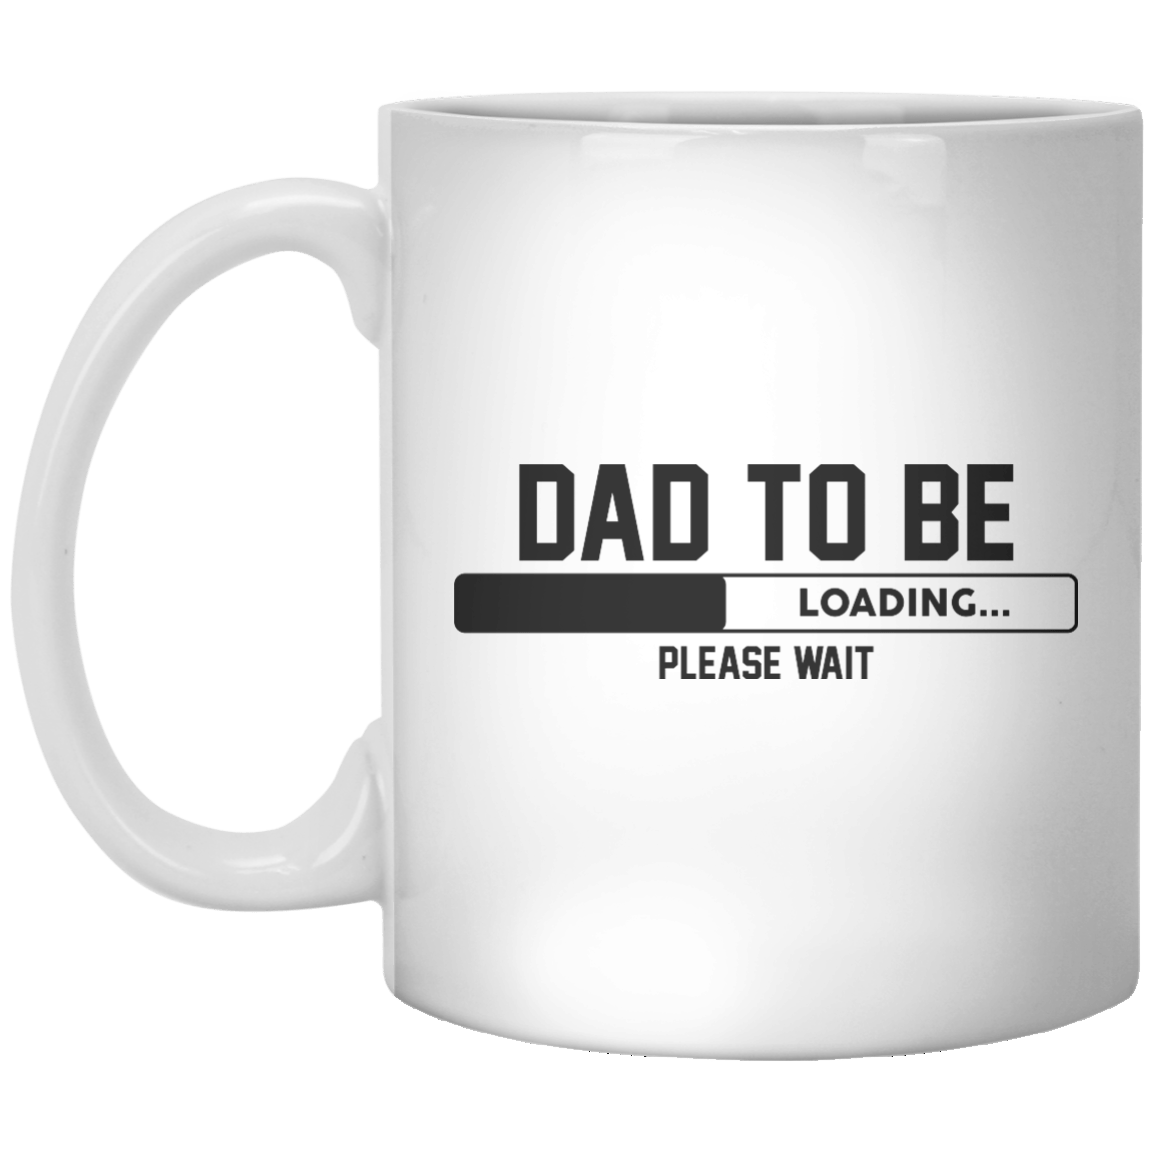 Dad To Be Loading... Please Wait - Shirtoopia